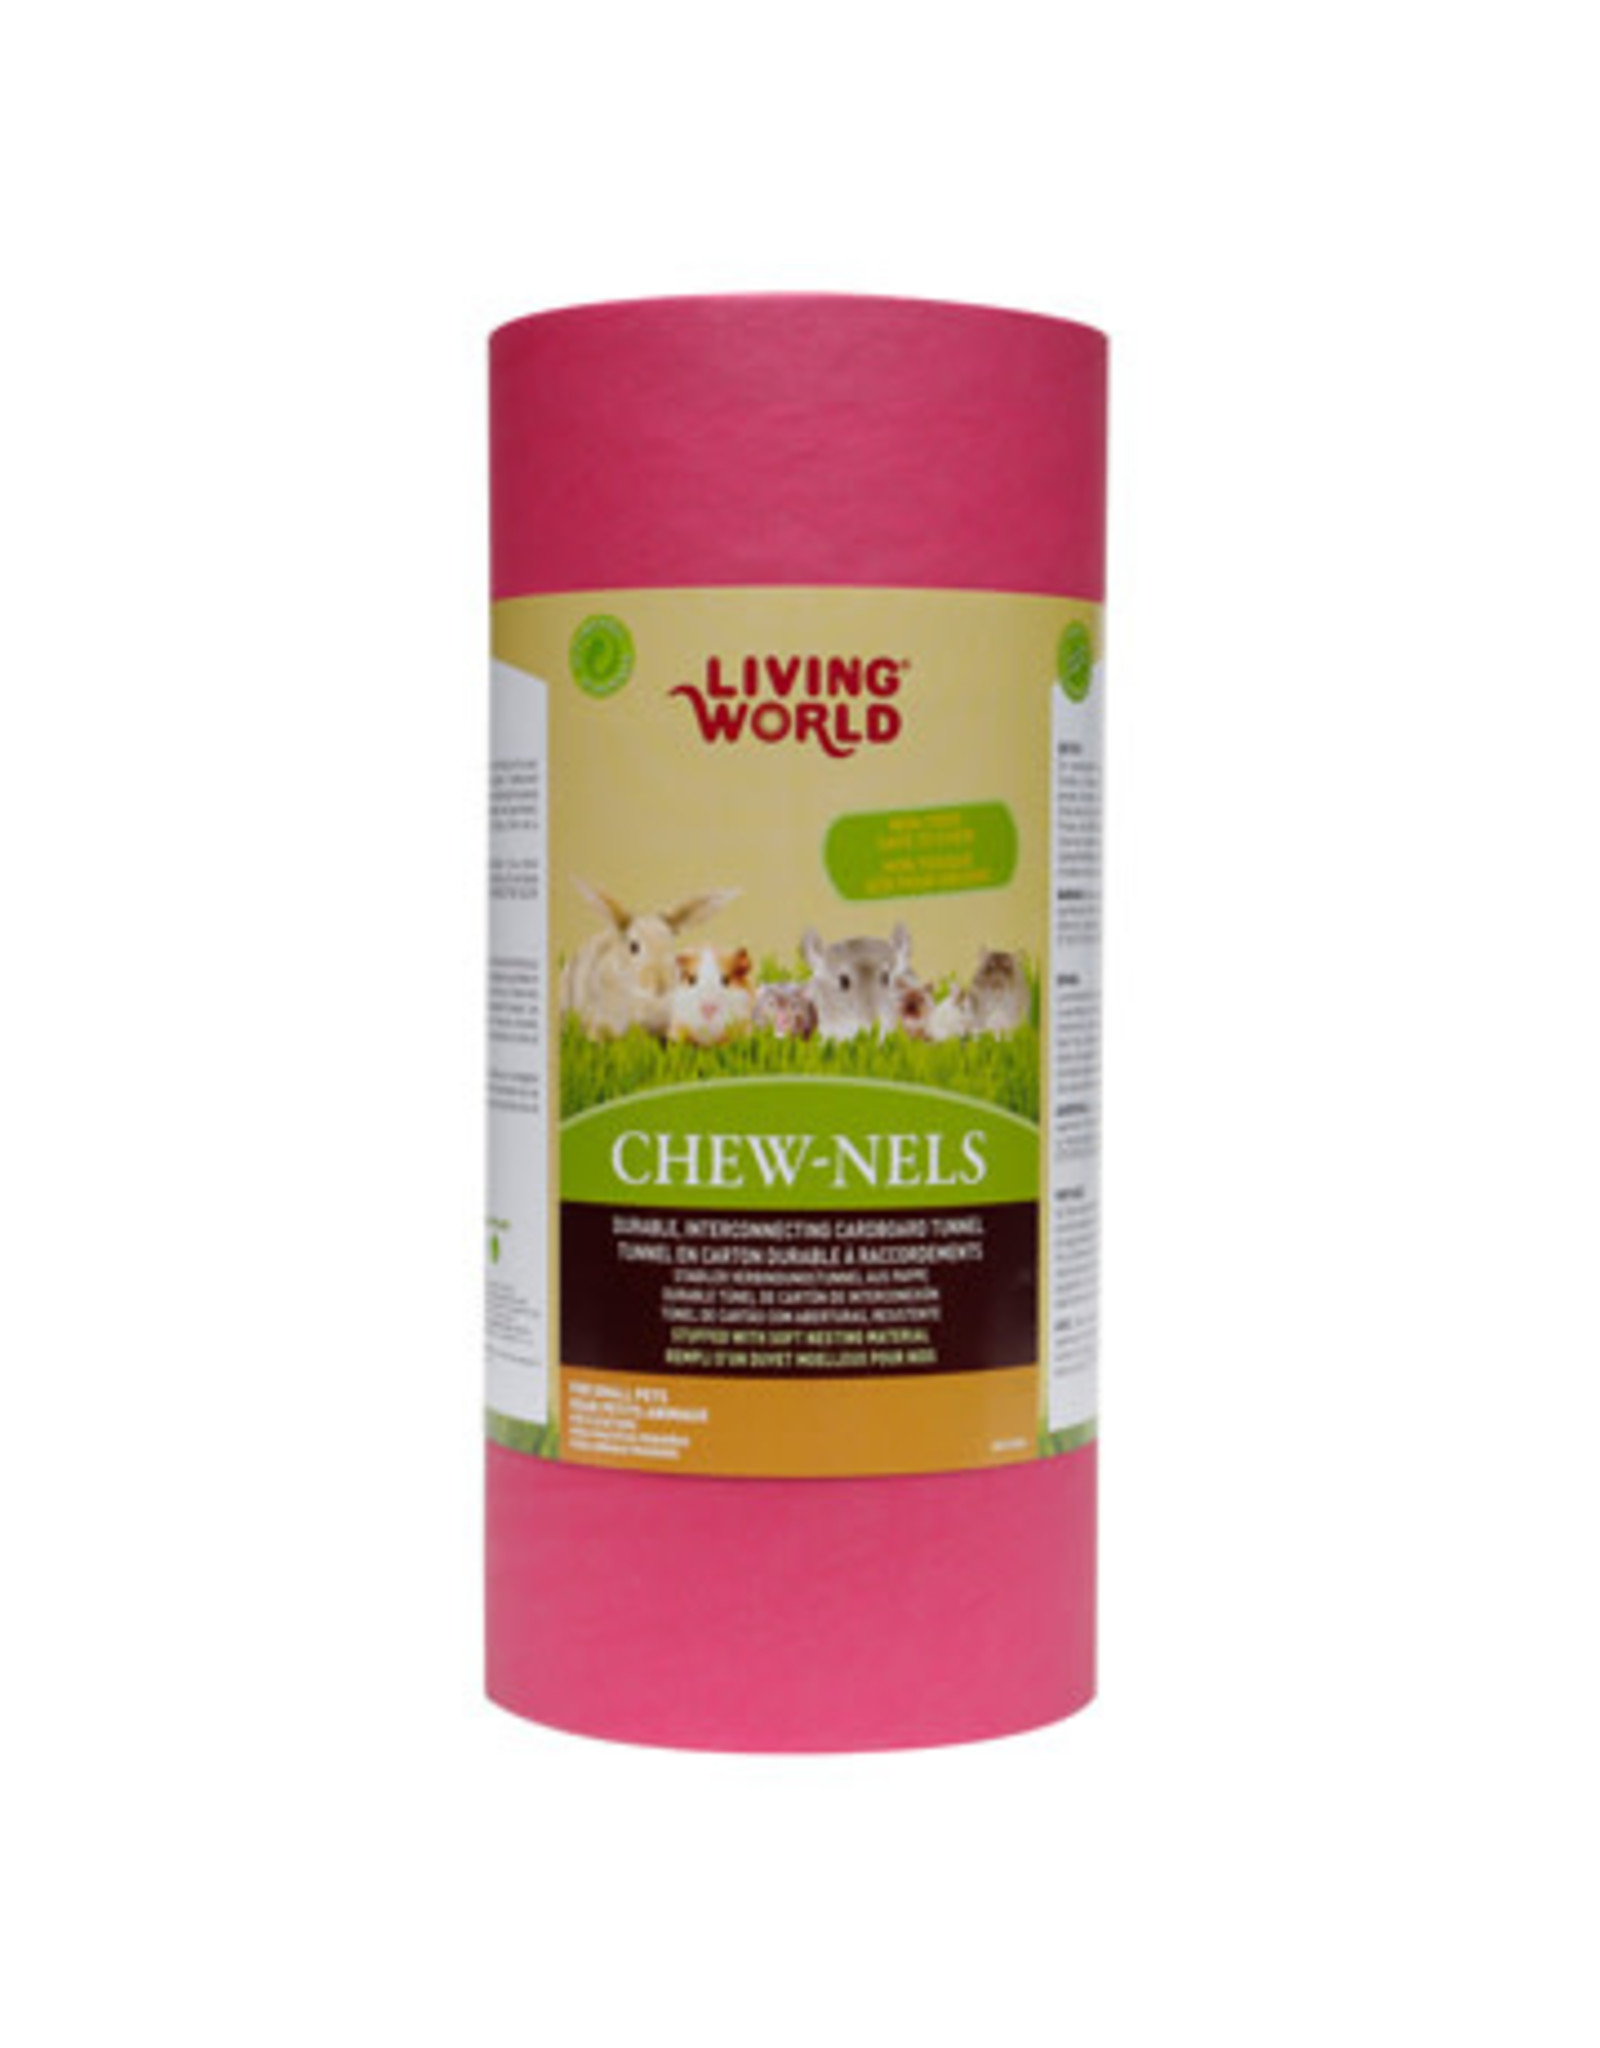 Living World Colourful Cardboard Chew-nels with Nesting material - Medium